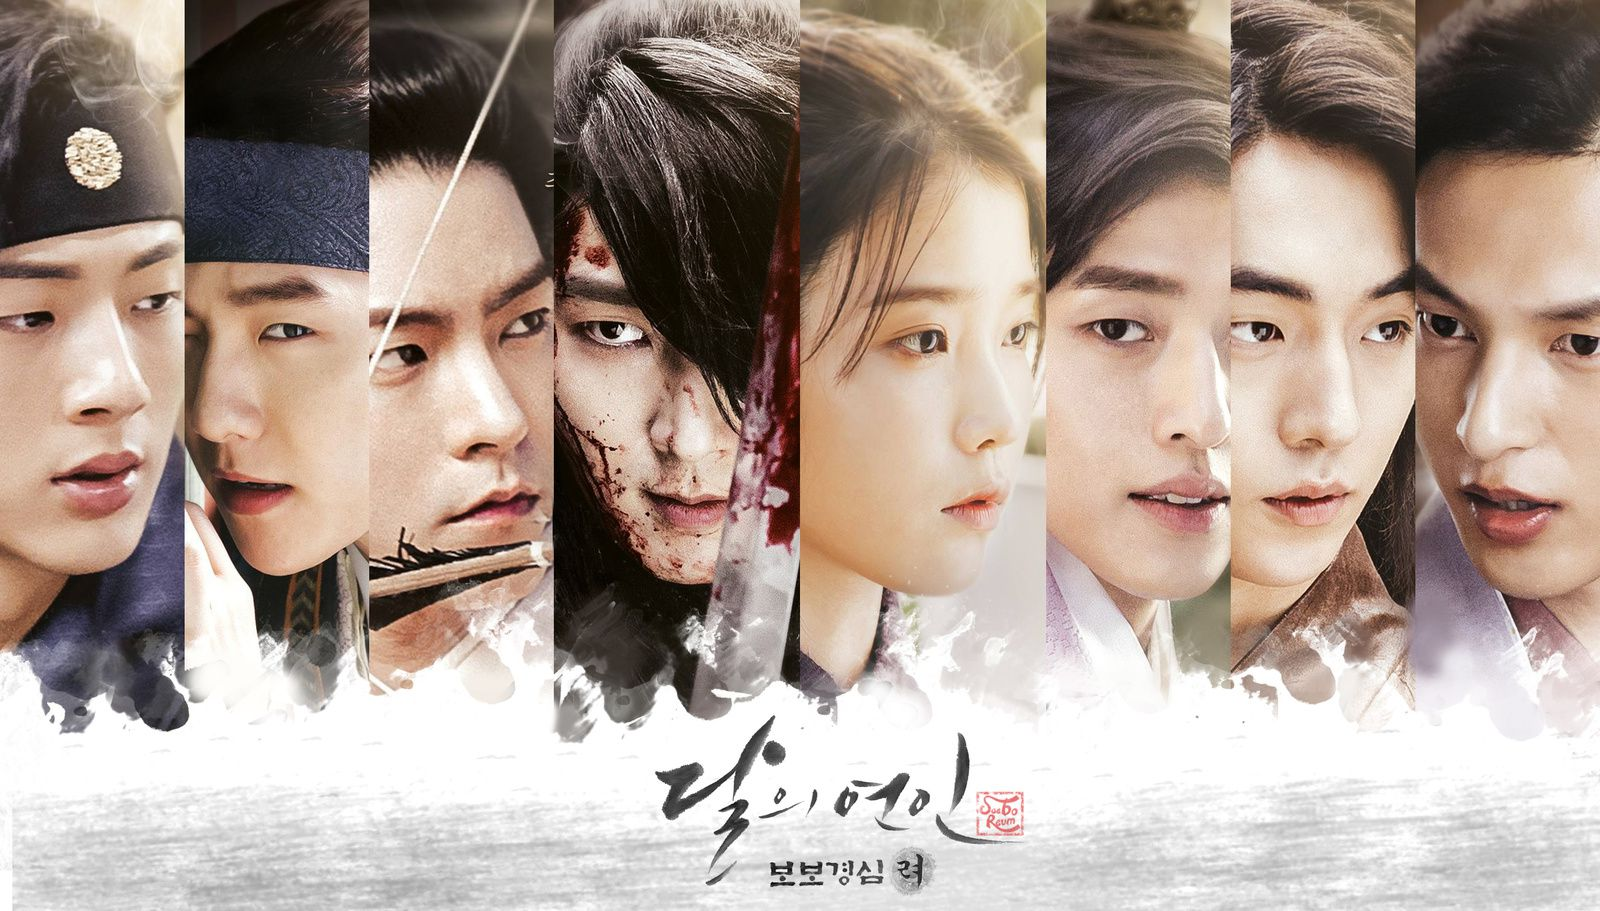 Moon lovers : Scarlett heart ryeo